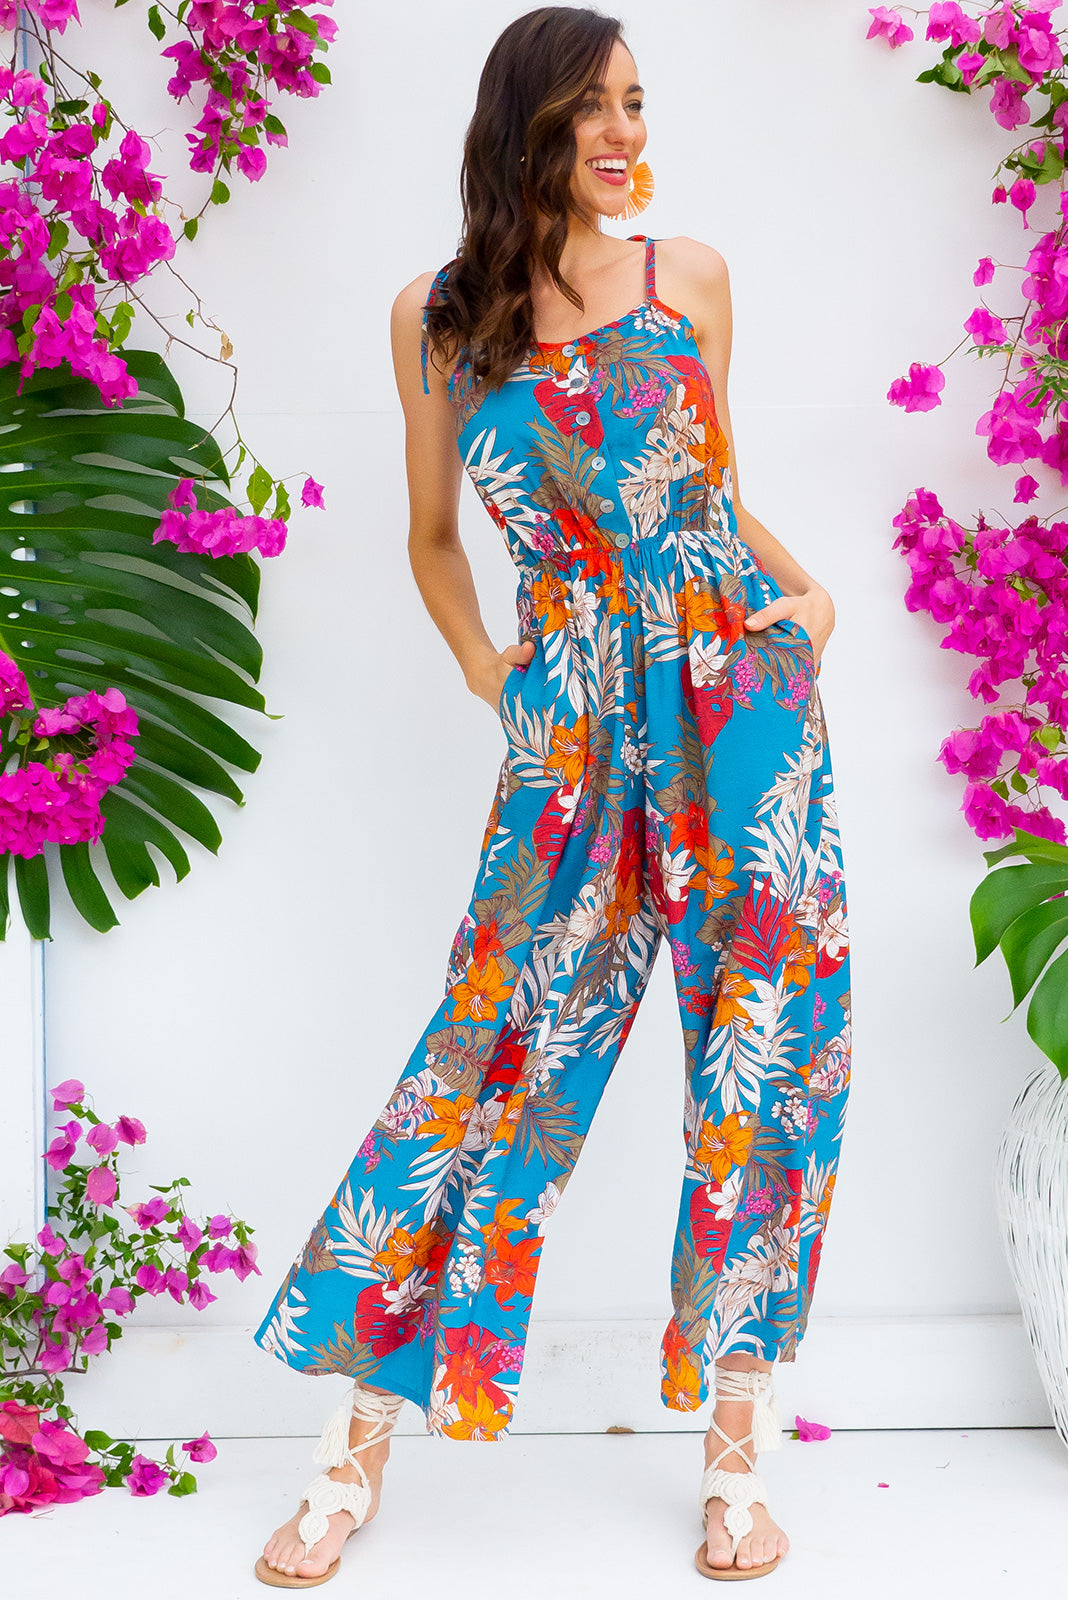 Sweet Caroline Teal Jungle jumpsuit features deep side pockets, an elastic waist and adjustable strap in a teal based tropical print on a woven rayon nylon blend